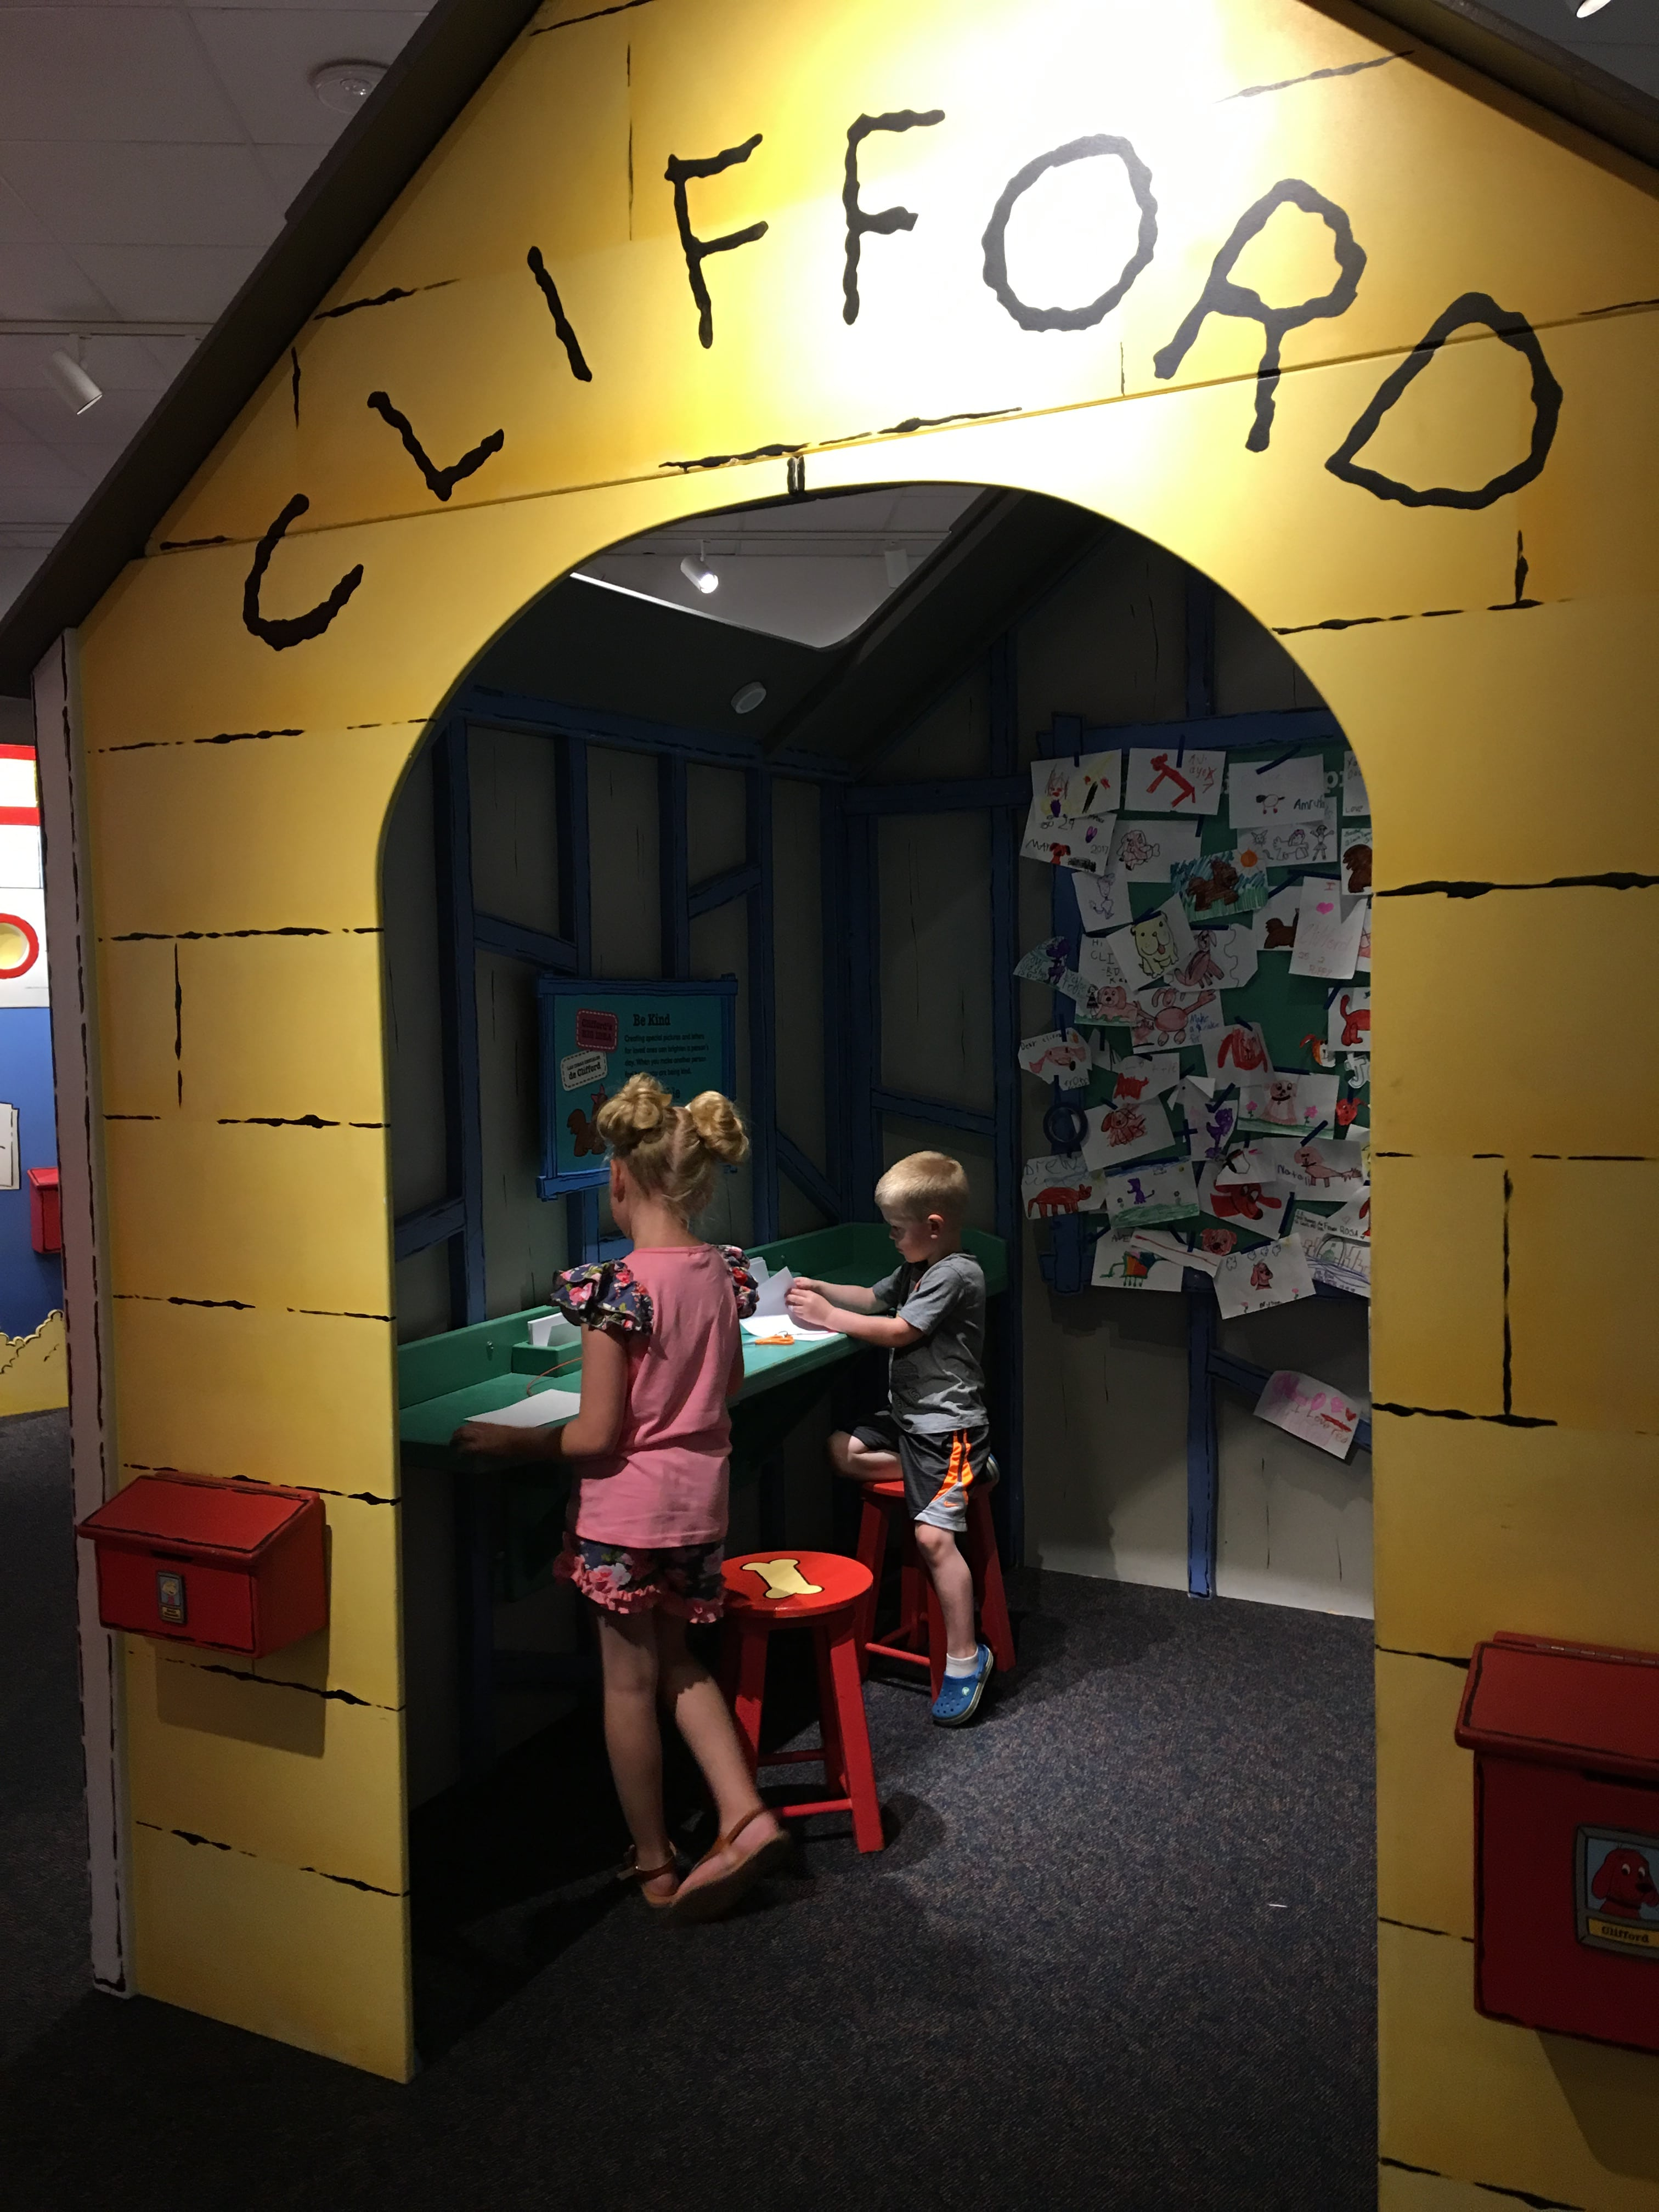 The Magic House, St. Louis Children's Museum